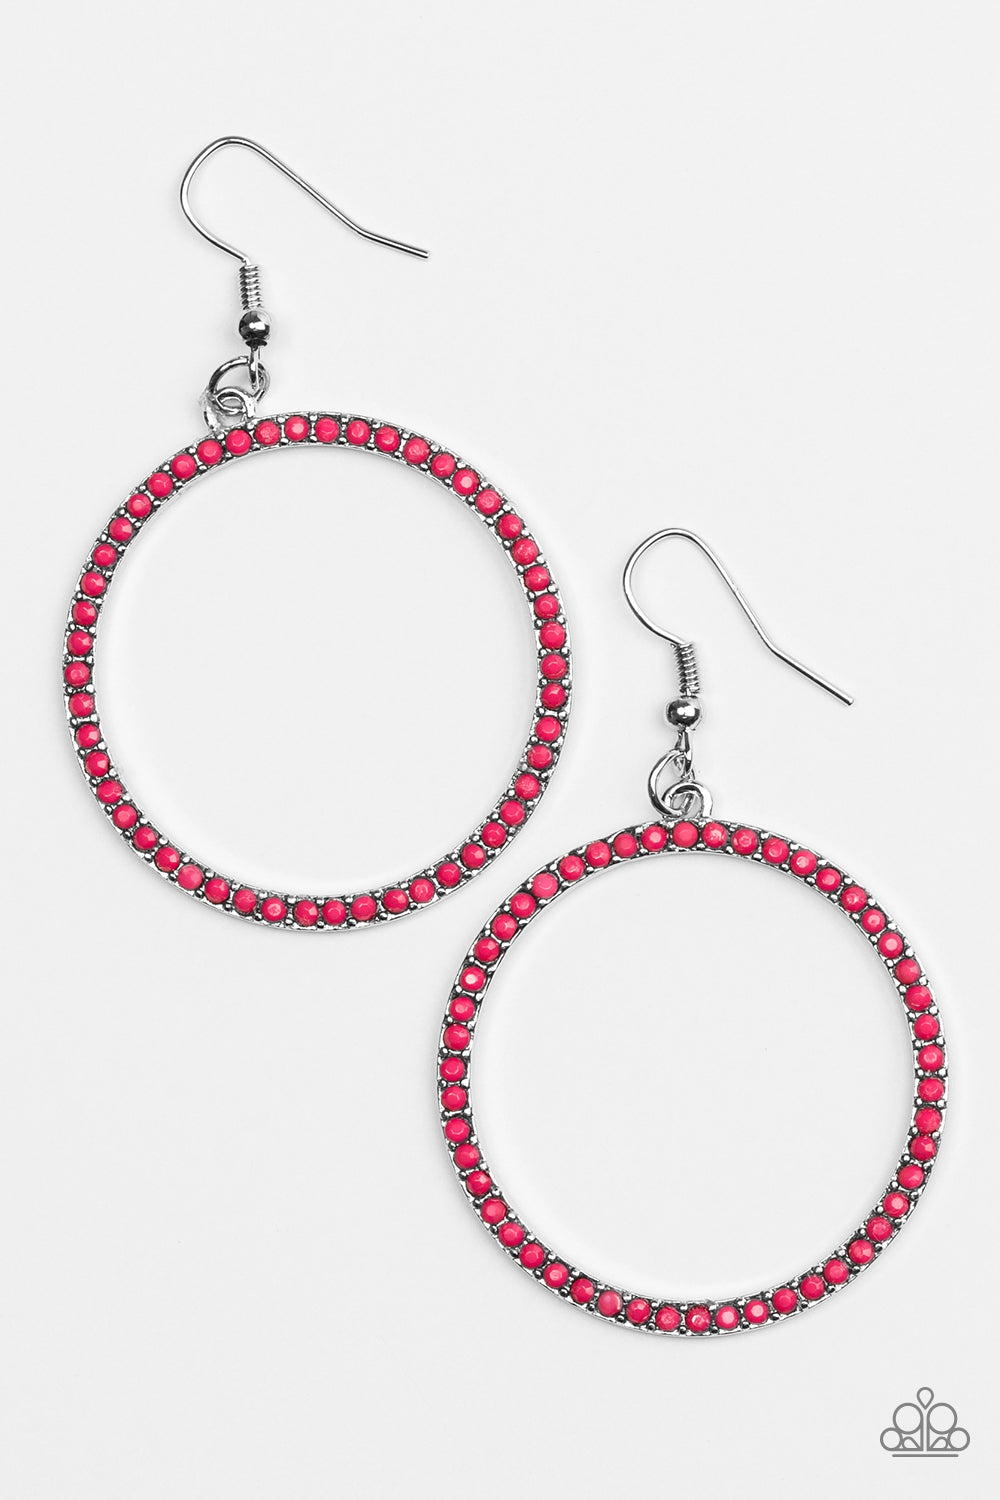 five-dollar-jewelry-spring-party-pink-paparazzi-accessories